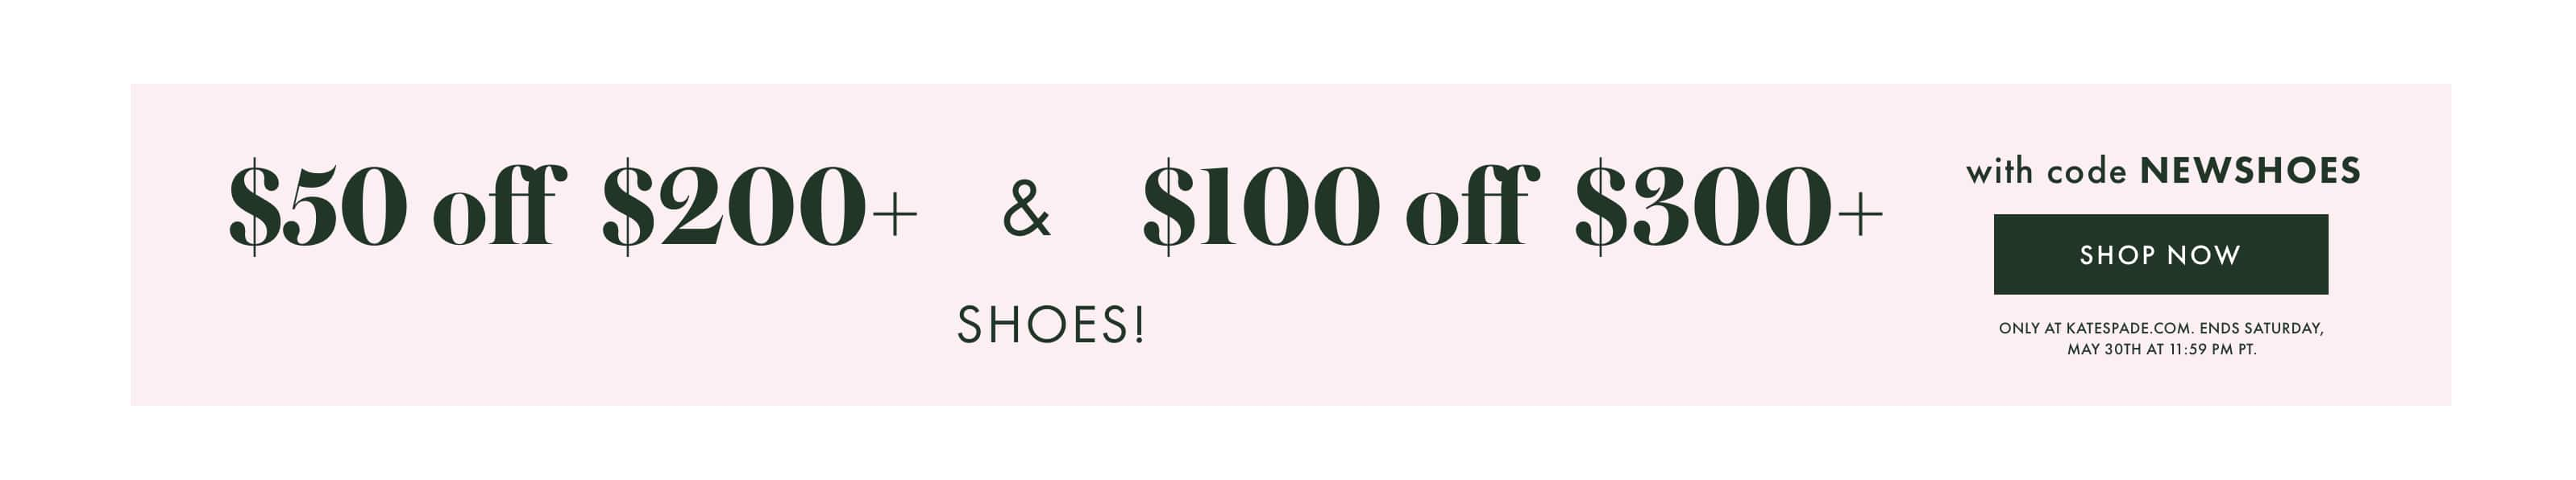 $50 off $200+ & $100 off $300+ shoes! with code NEWSHOES shop now. only at katespade.com. ends saturday, 